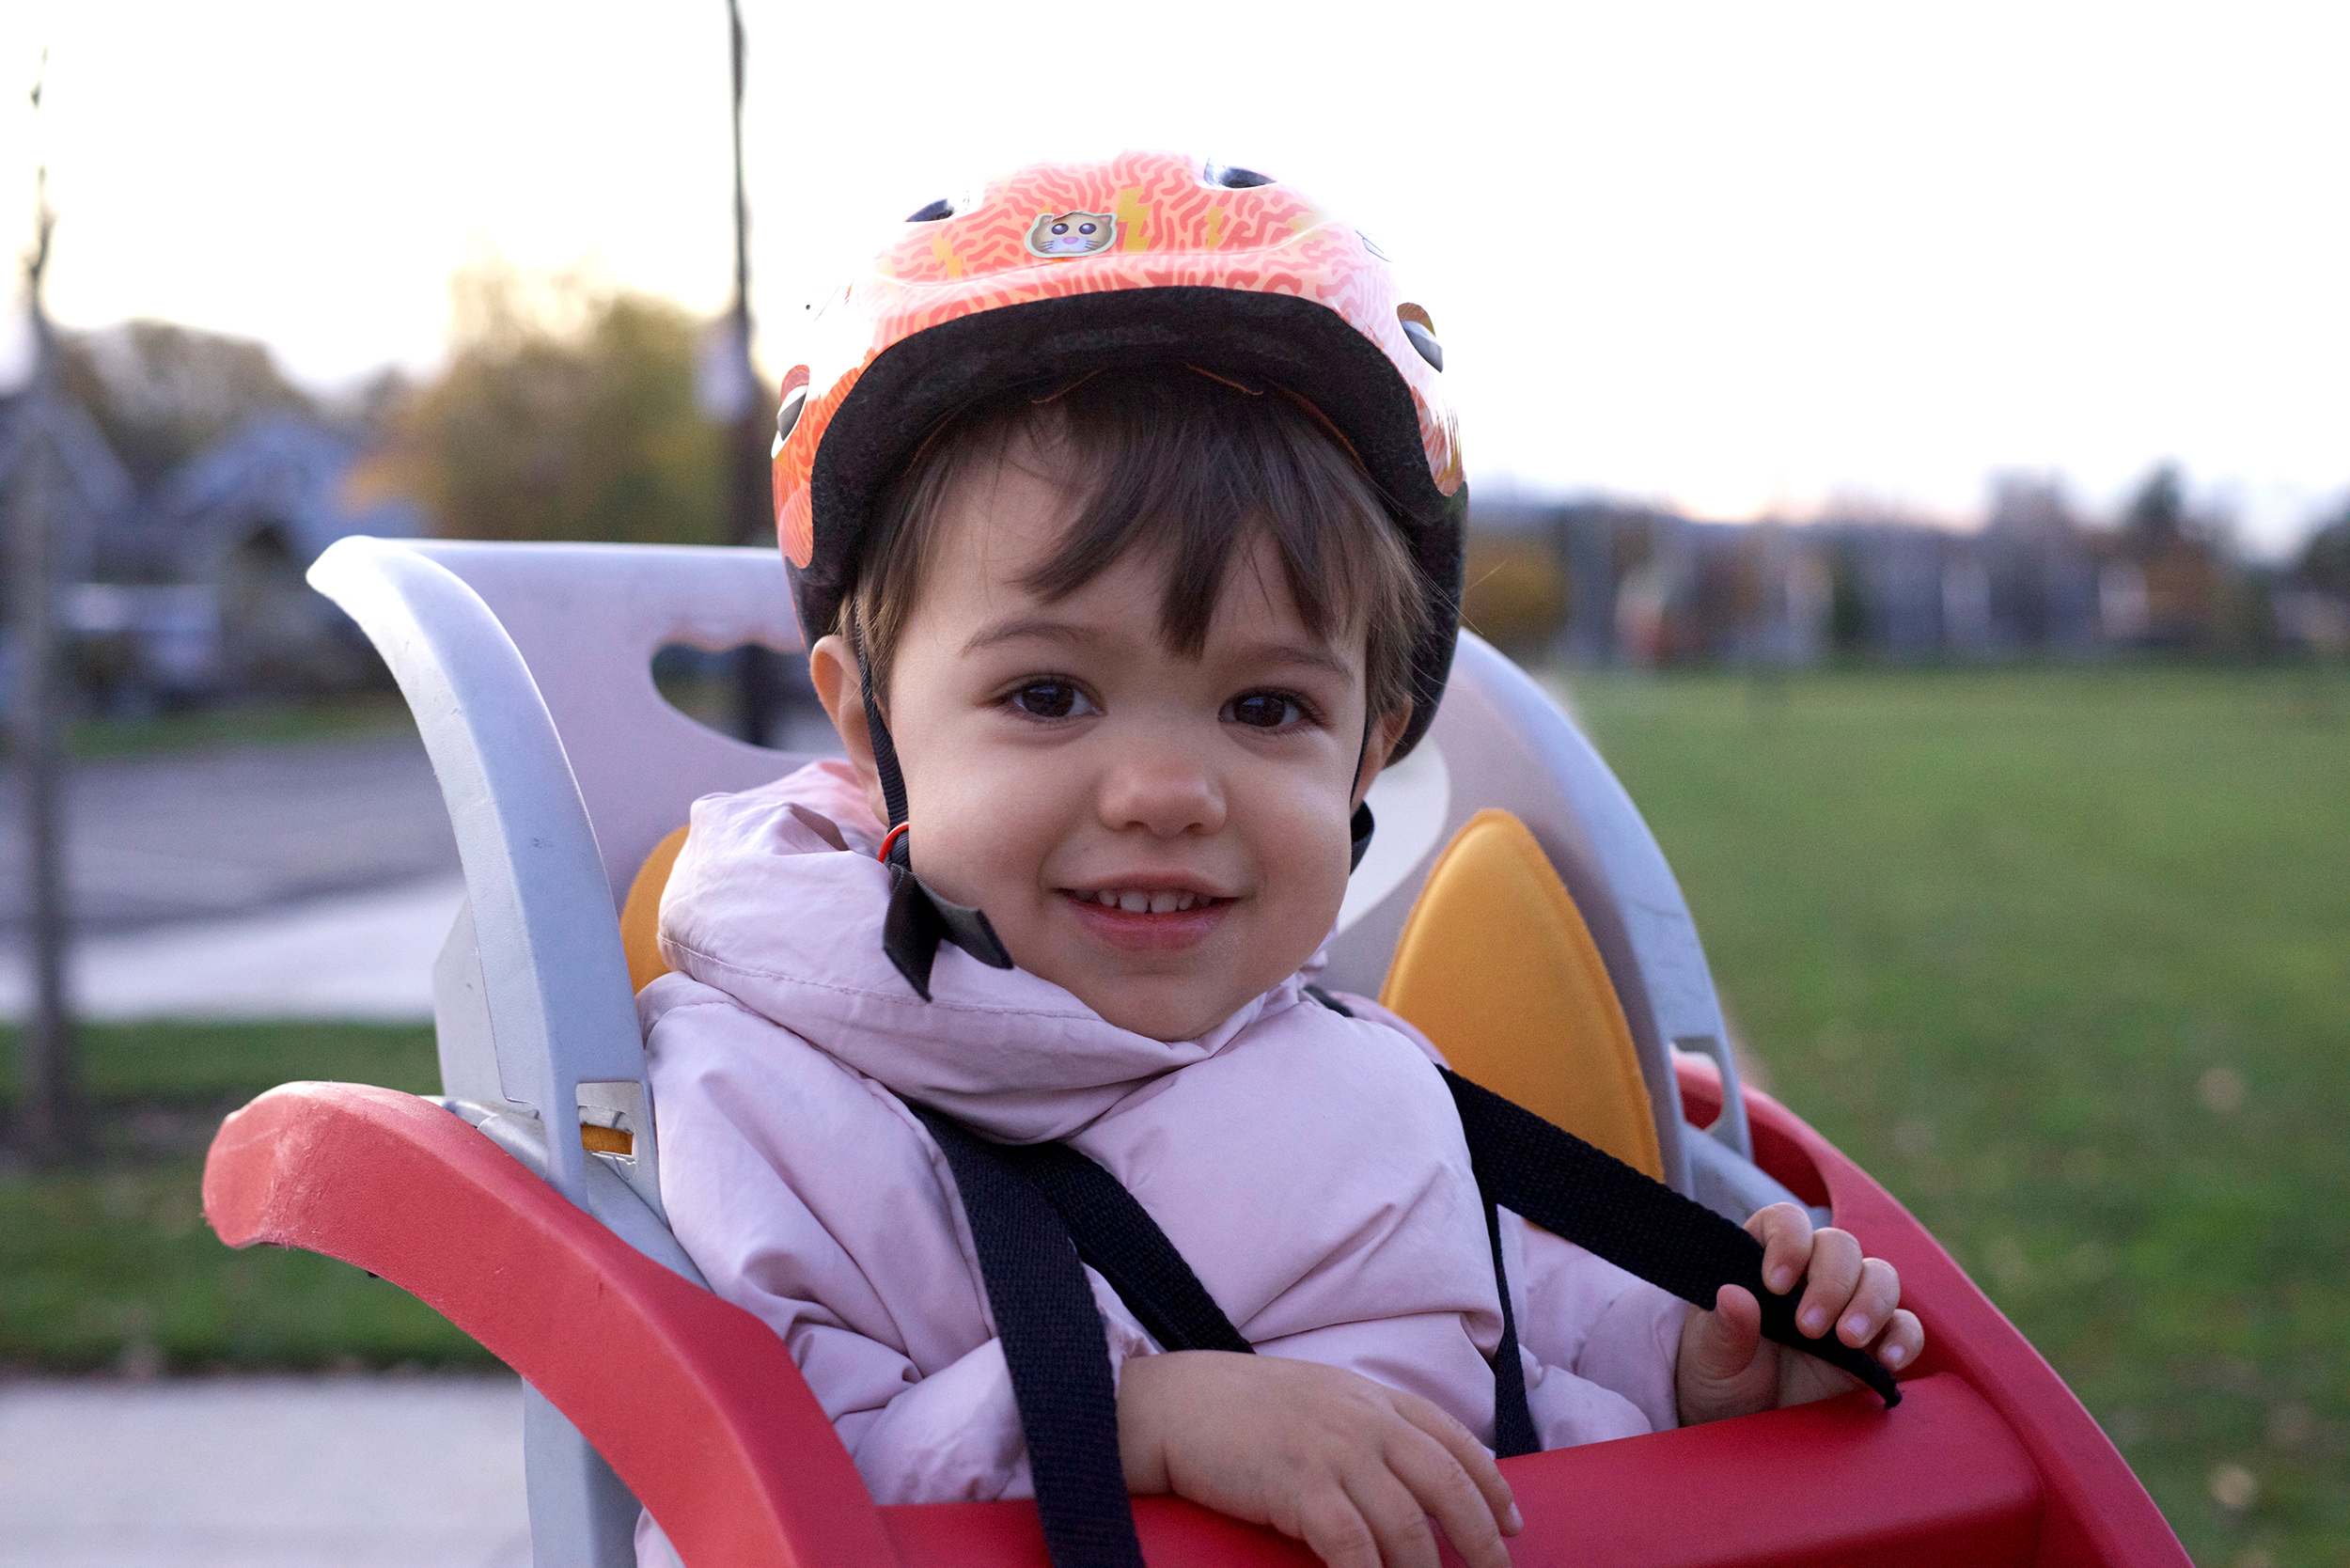 Child wearing a bike helmet and sitting on a bike